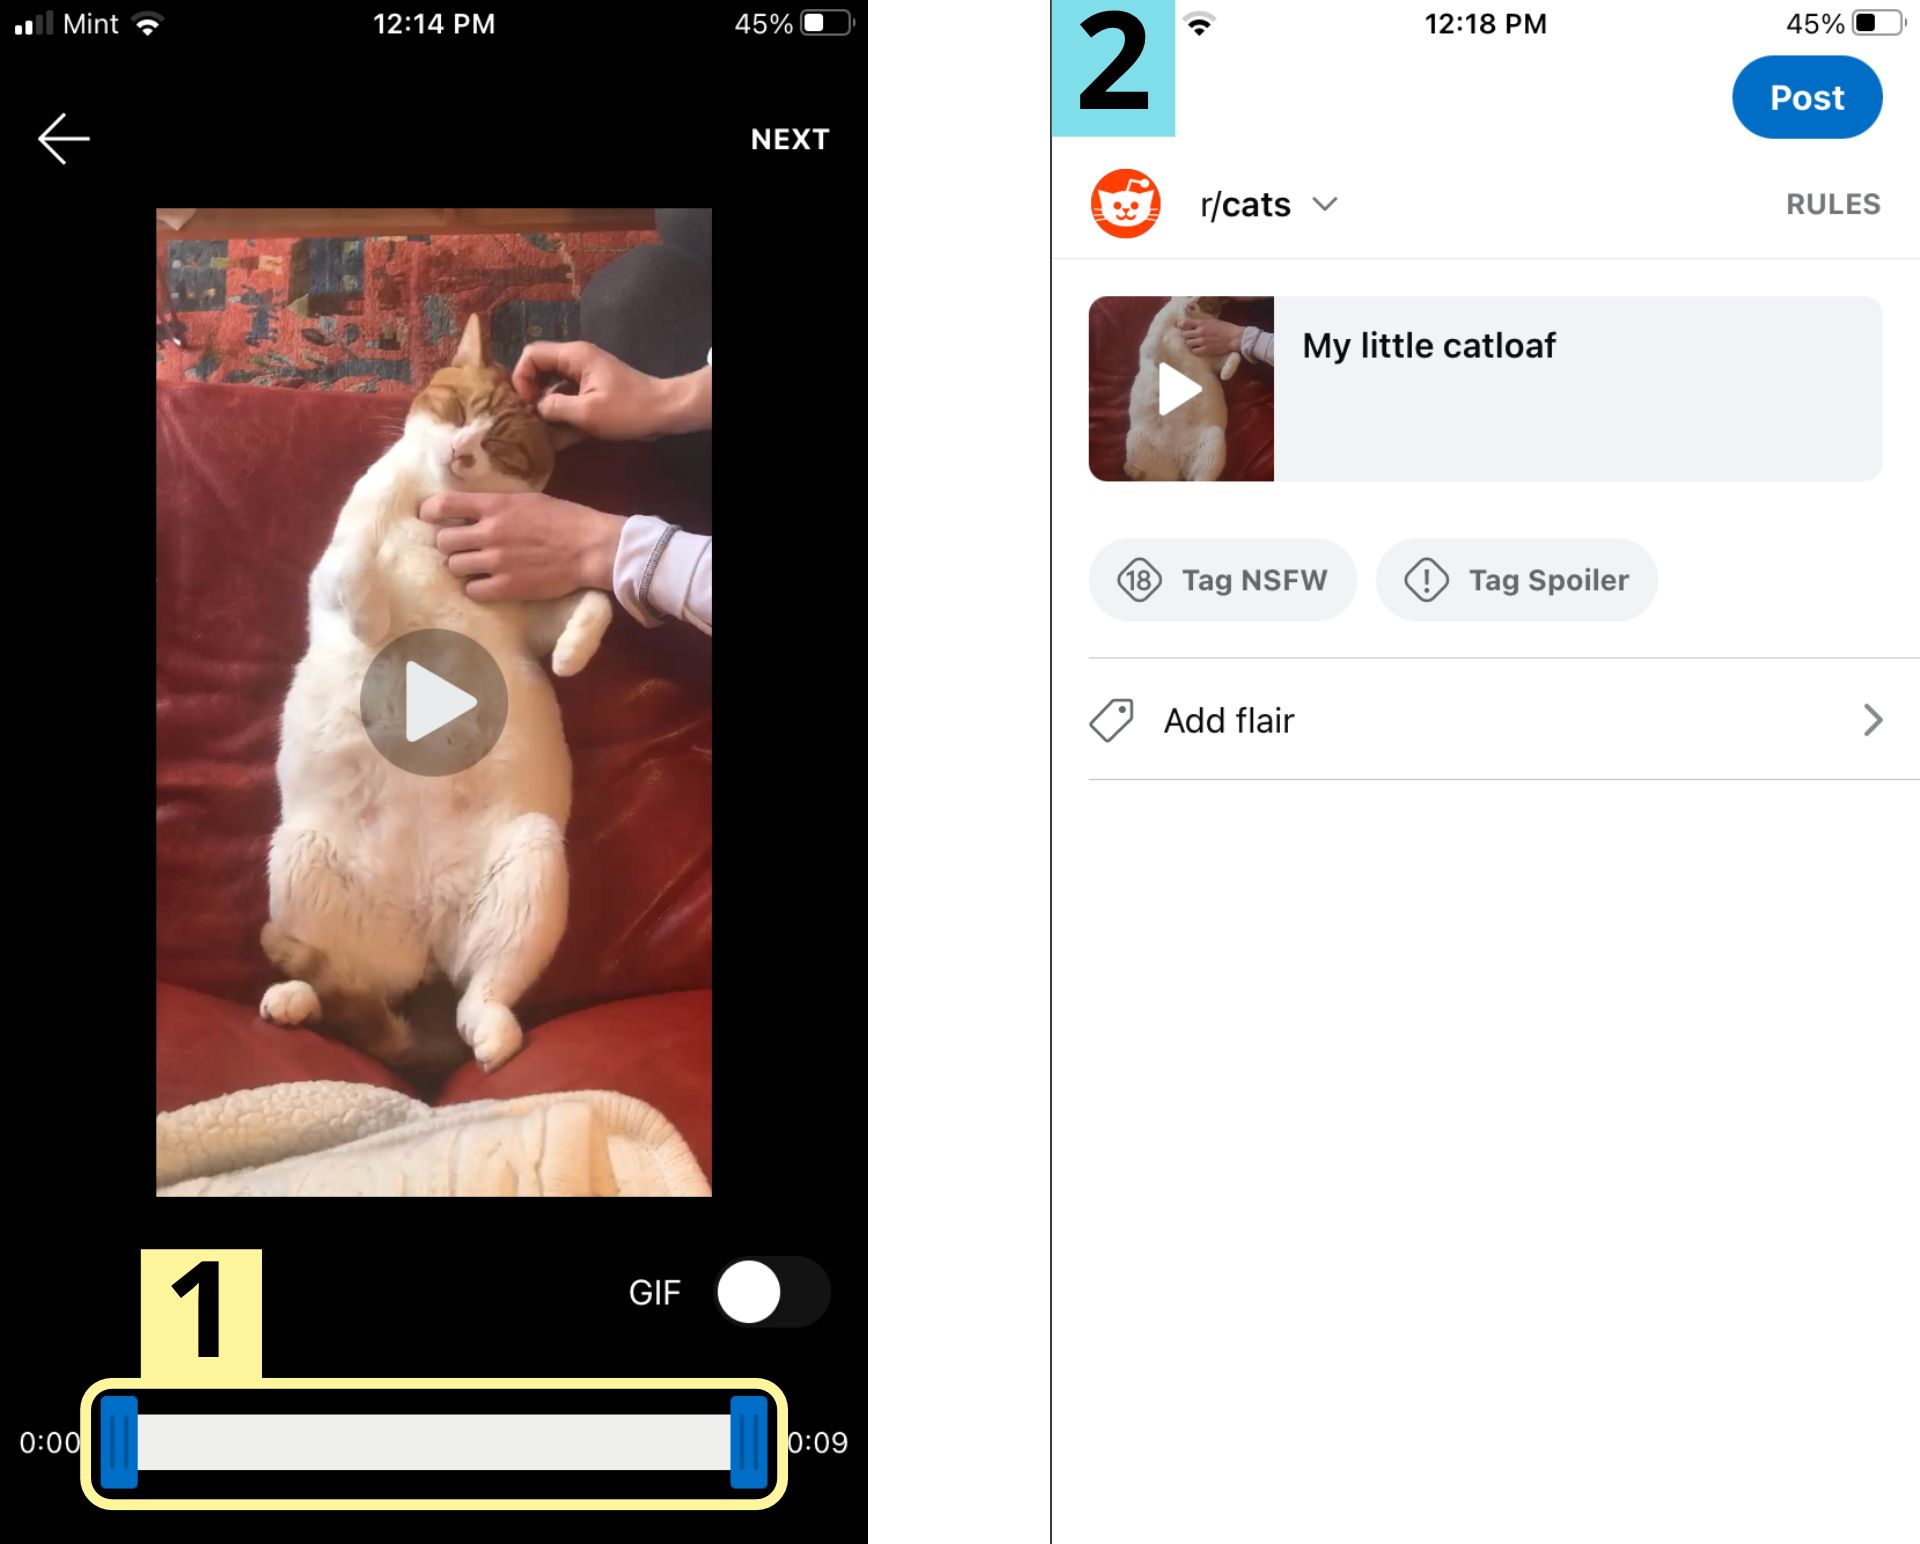 Two screenshots showing how to post videos to Reddit from the mobile video feed.